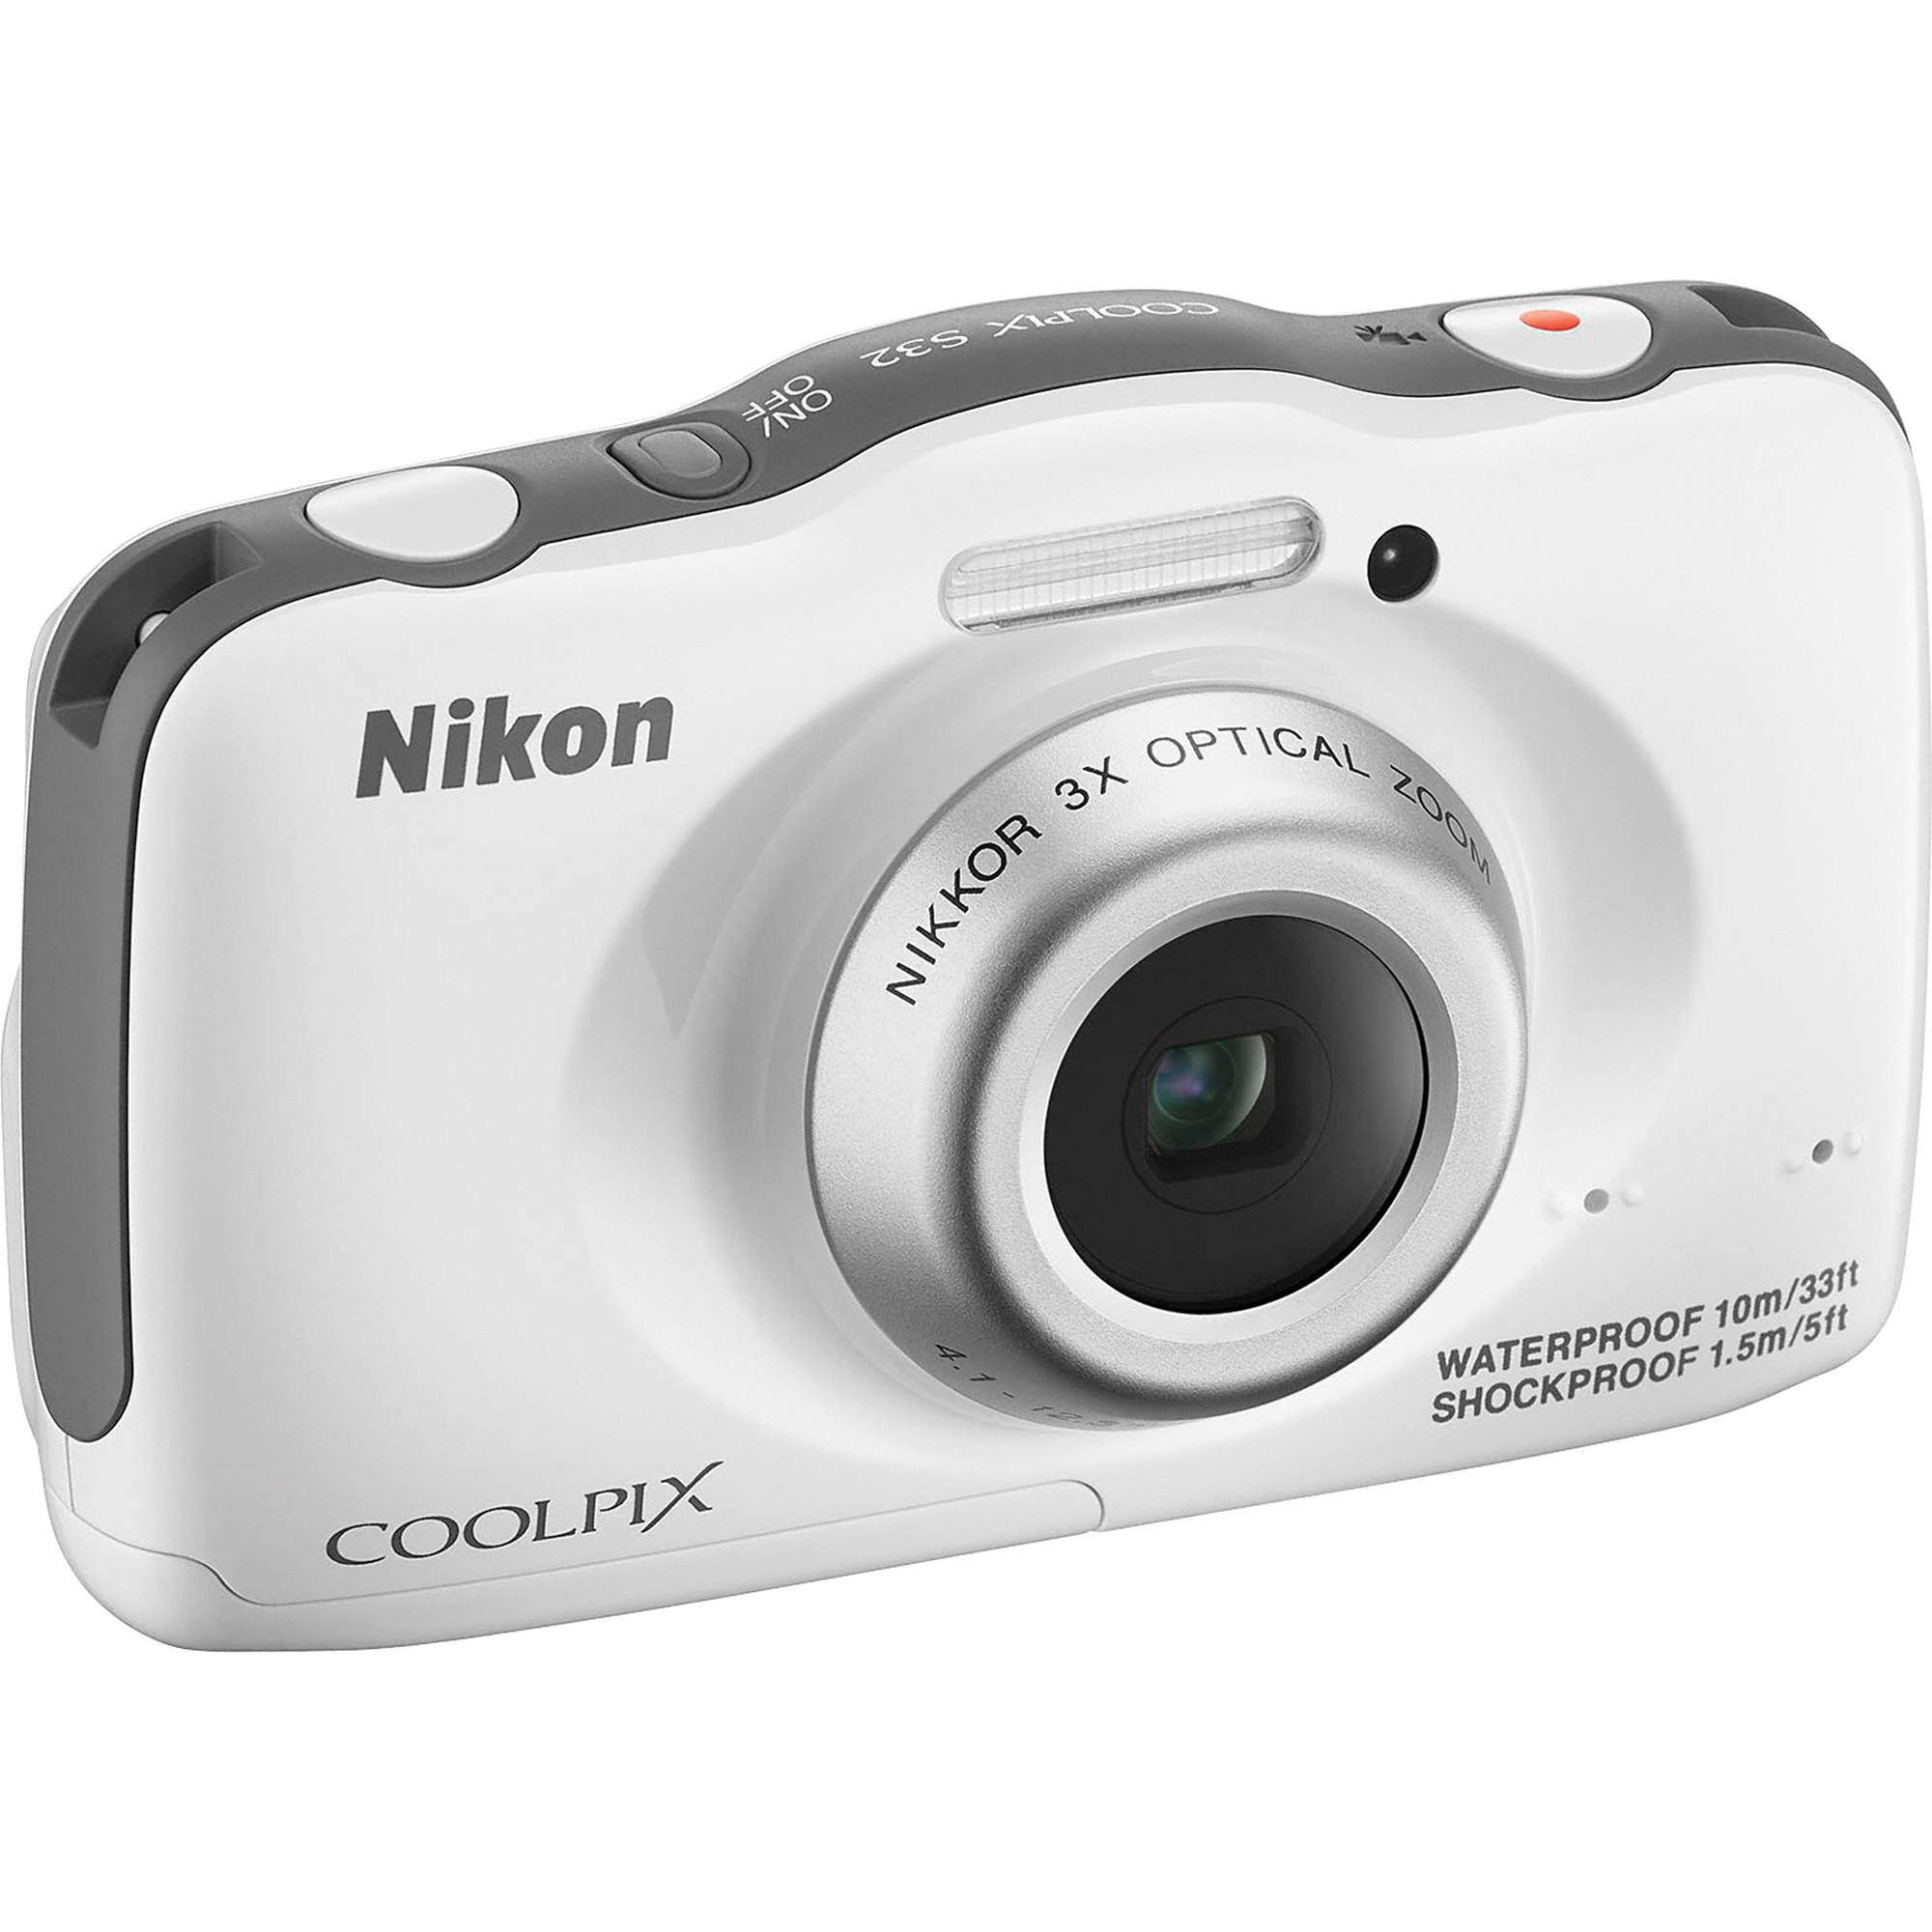 nikon coolpix s32 digital camera white 26460 b h photo video. Black Bedroom Furniture Sets. Home Design Ideas